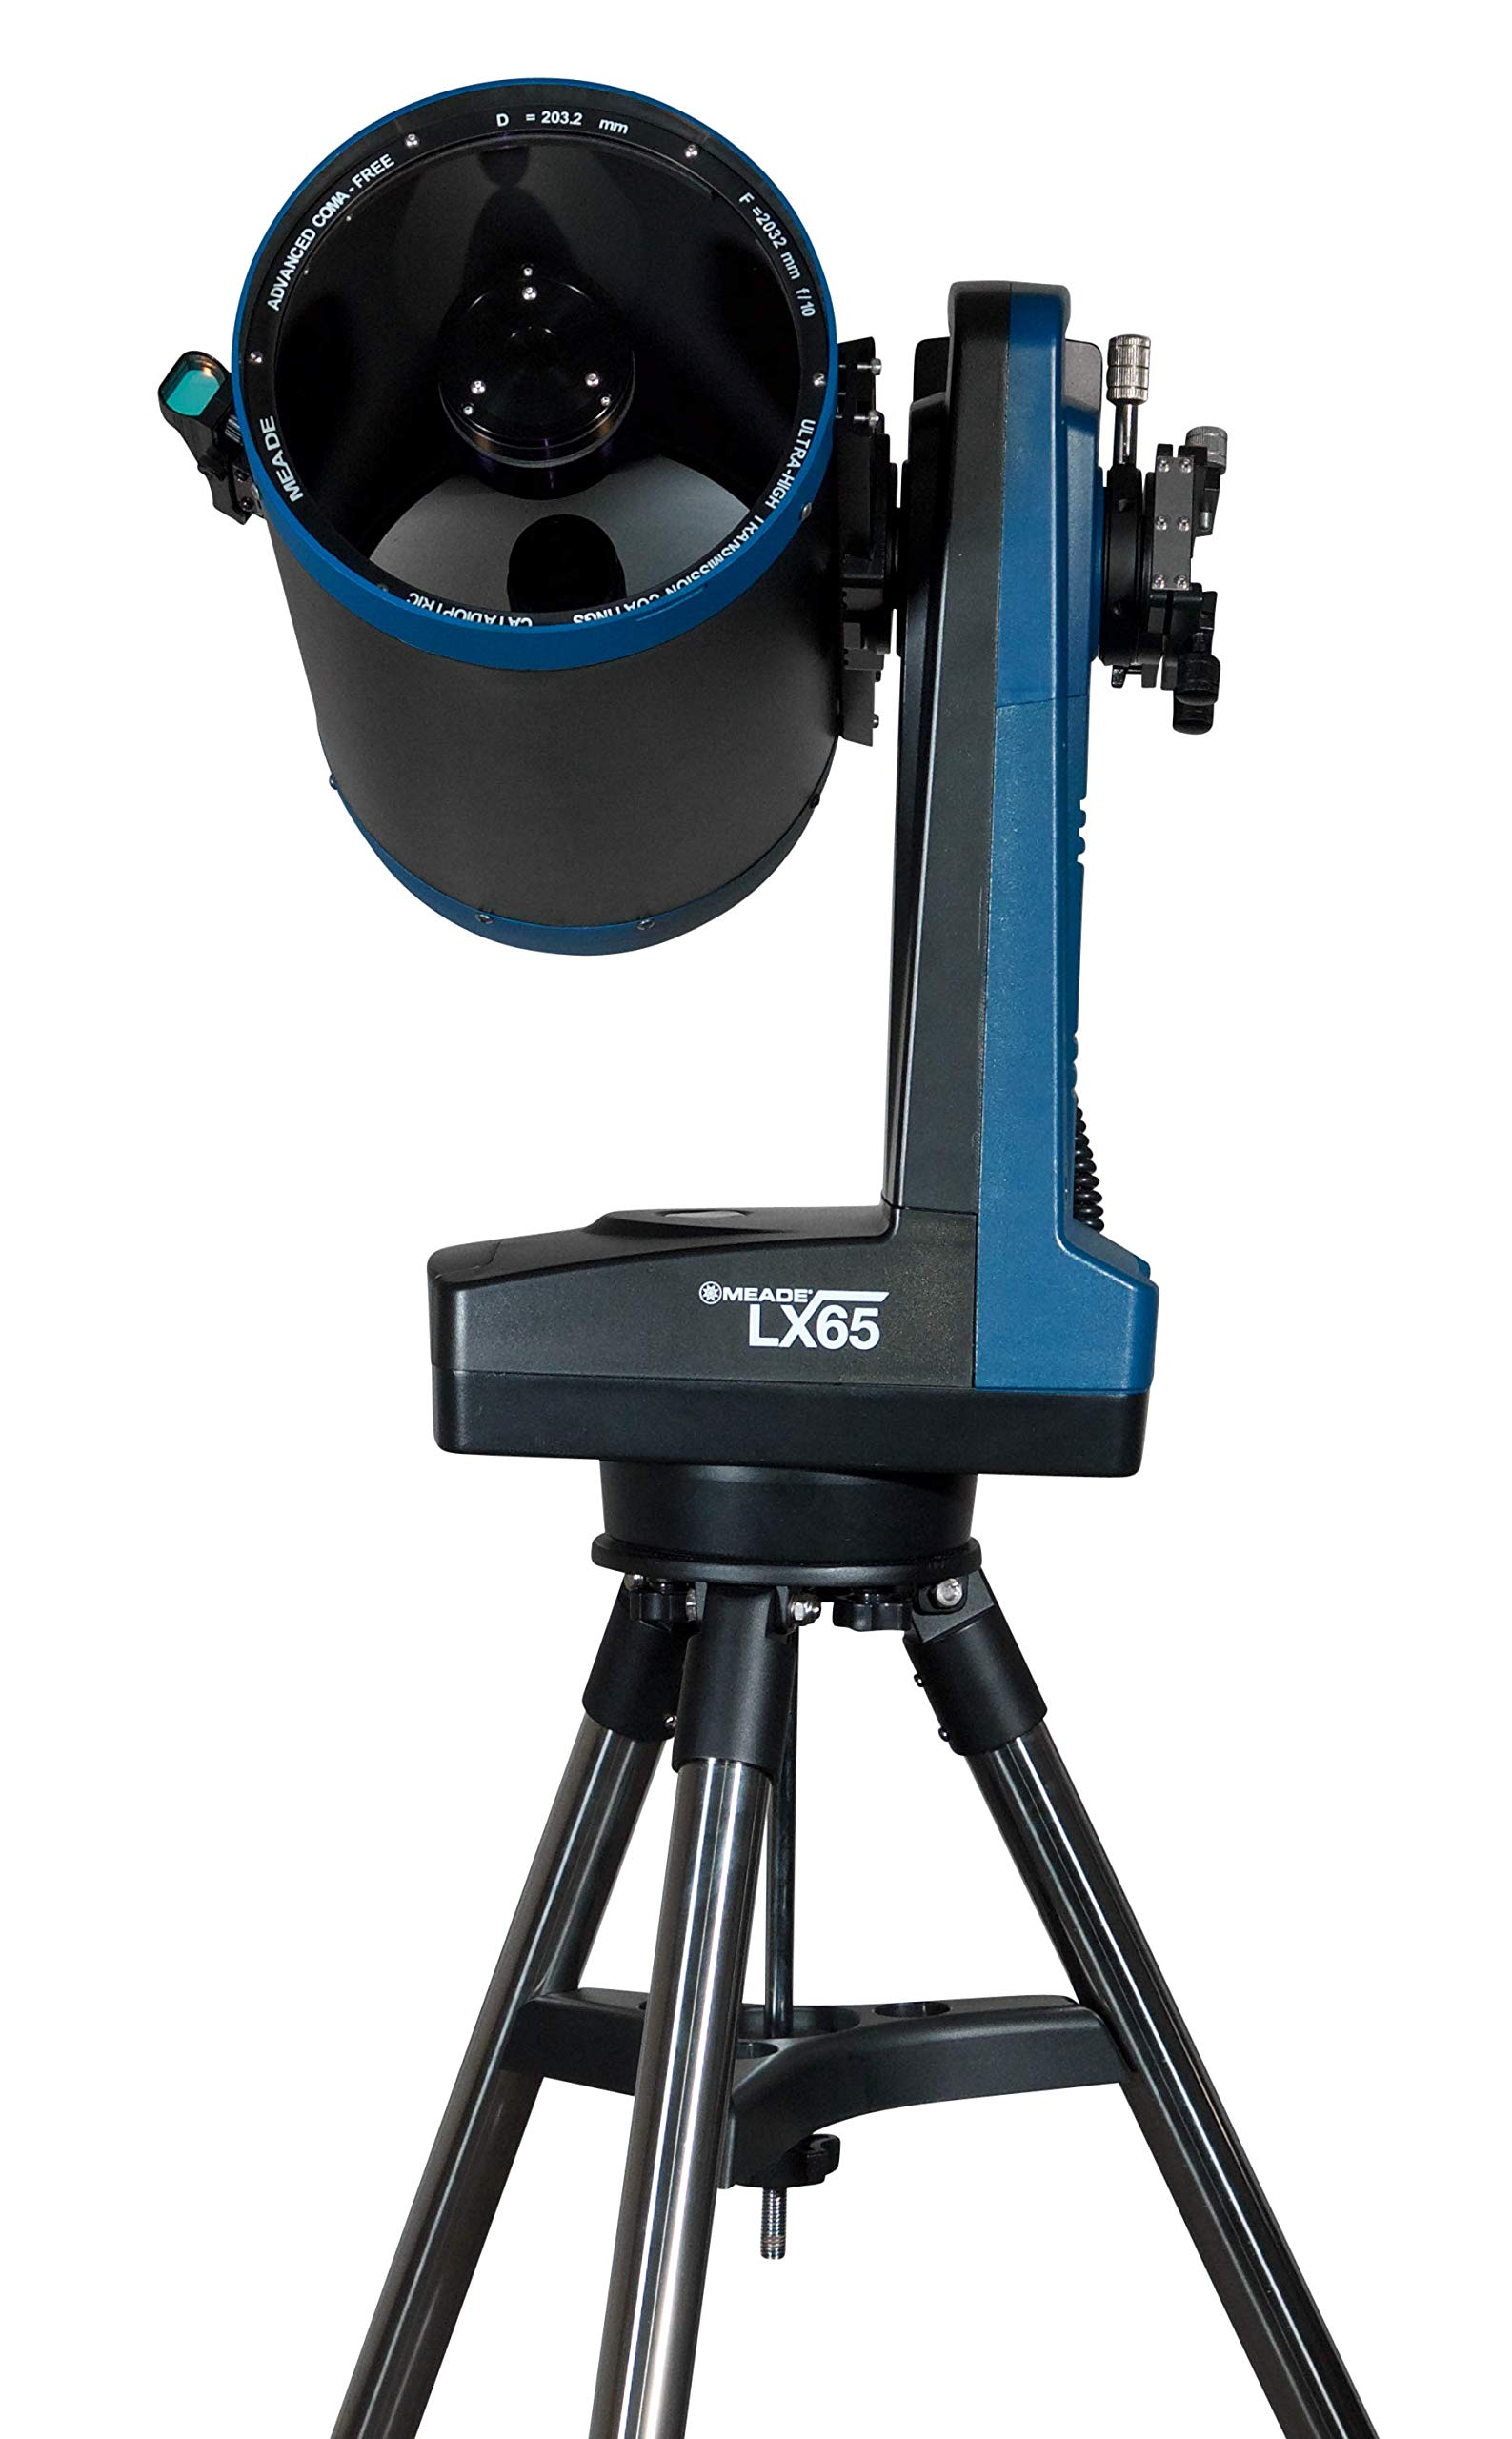 Meade Instruments 228004 Lx65 8 Inch ACF Telescope with AudioStar by MEADE